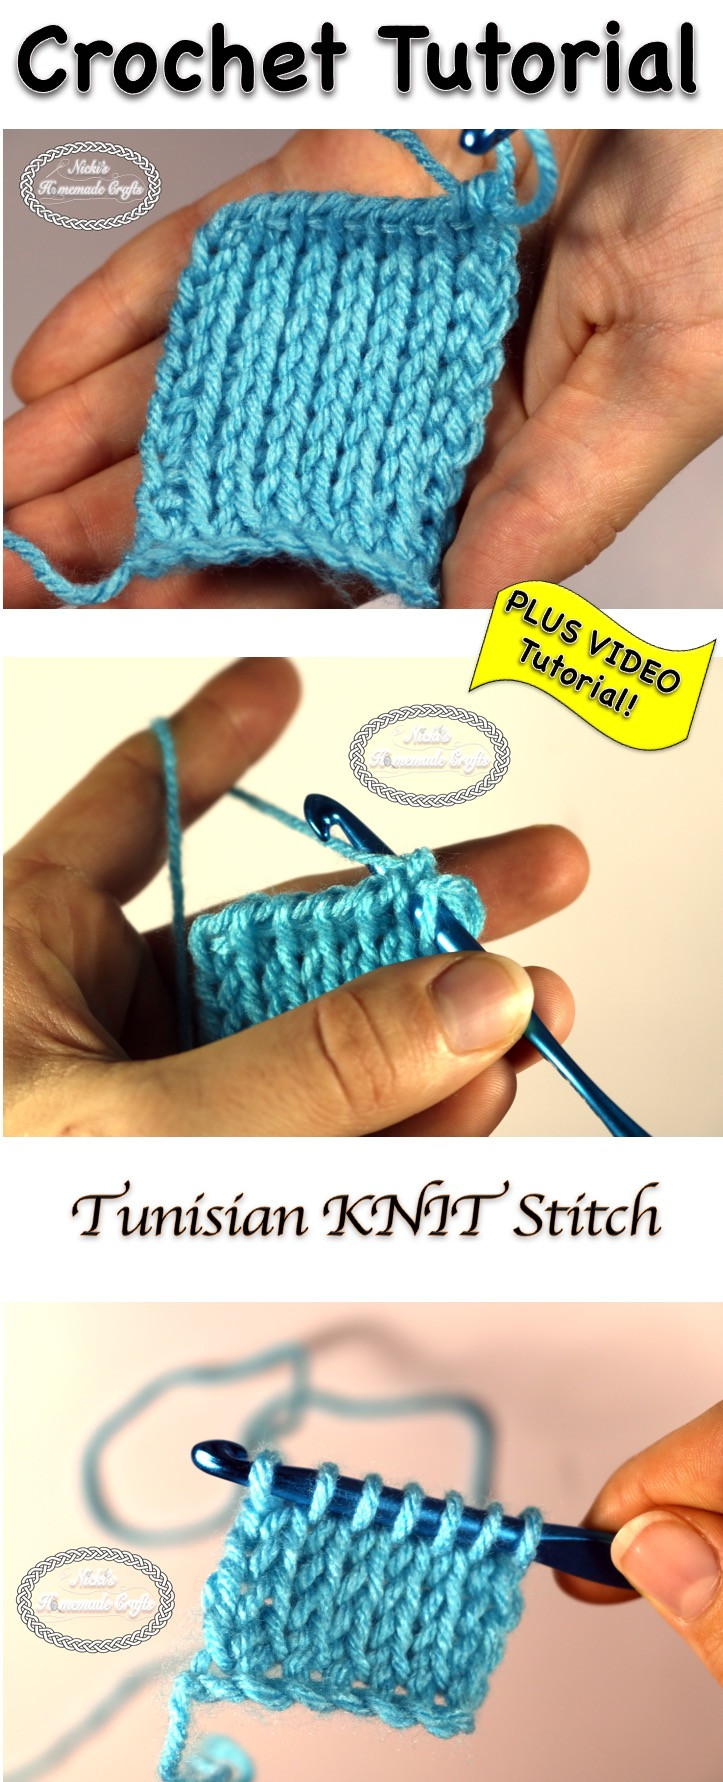 New Tutorial Tunisian Knit Stitch Crochet Stitch Tutorial Tunisian Crochet Knit Stitch Of Superb 46 Pictures Tunisian Crochet Knit Stitch